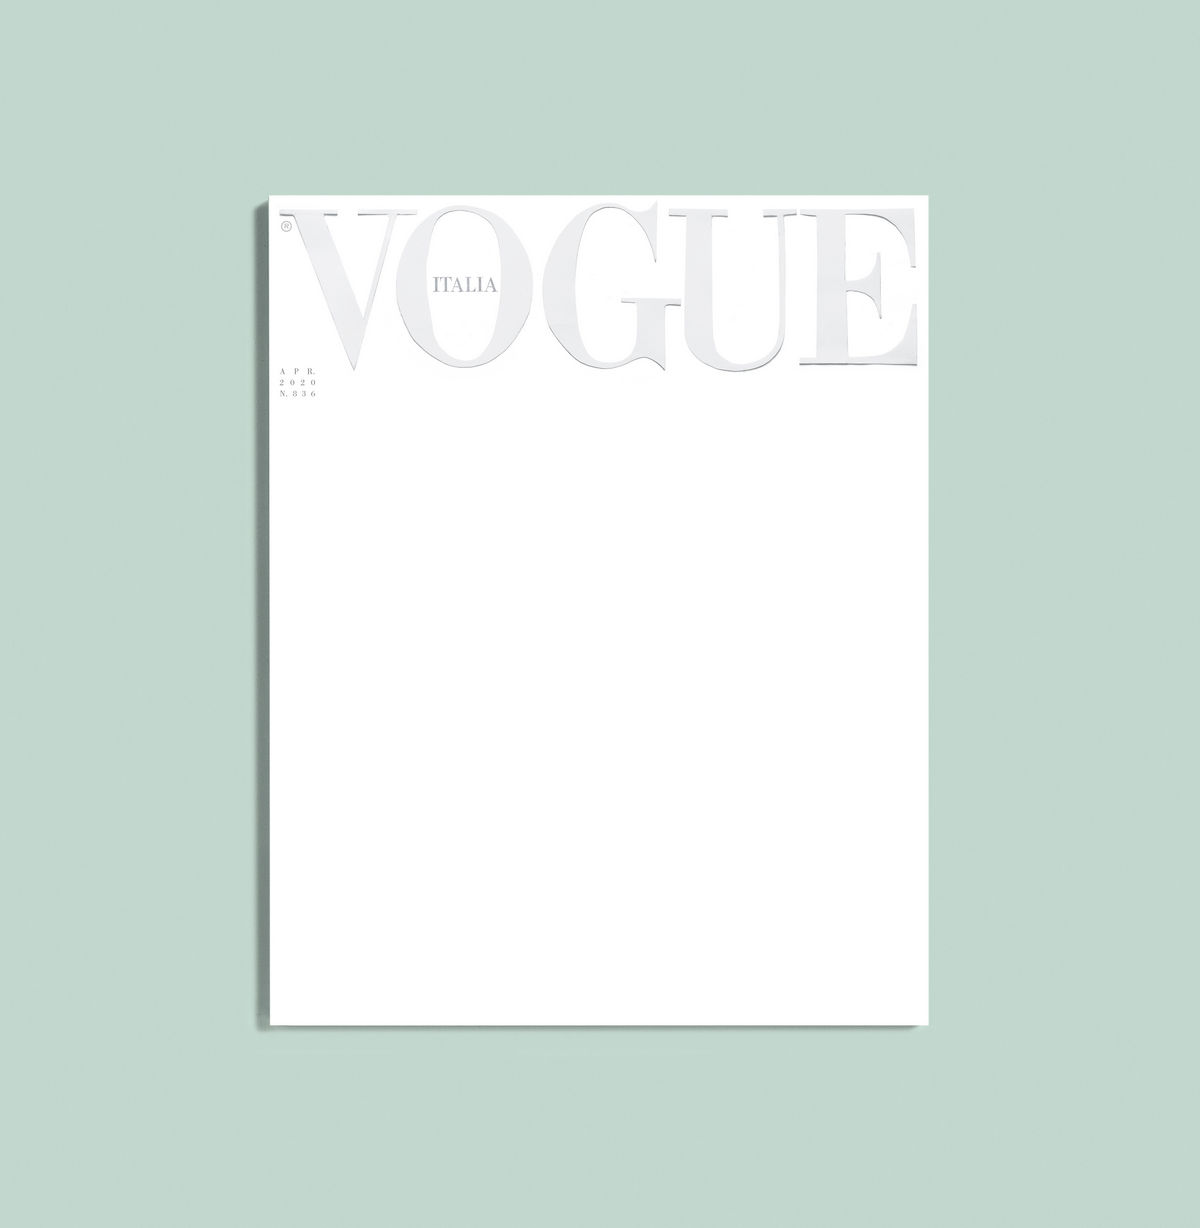 Vogue Italia Releases First-ever, All-white Cover Due To